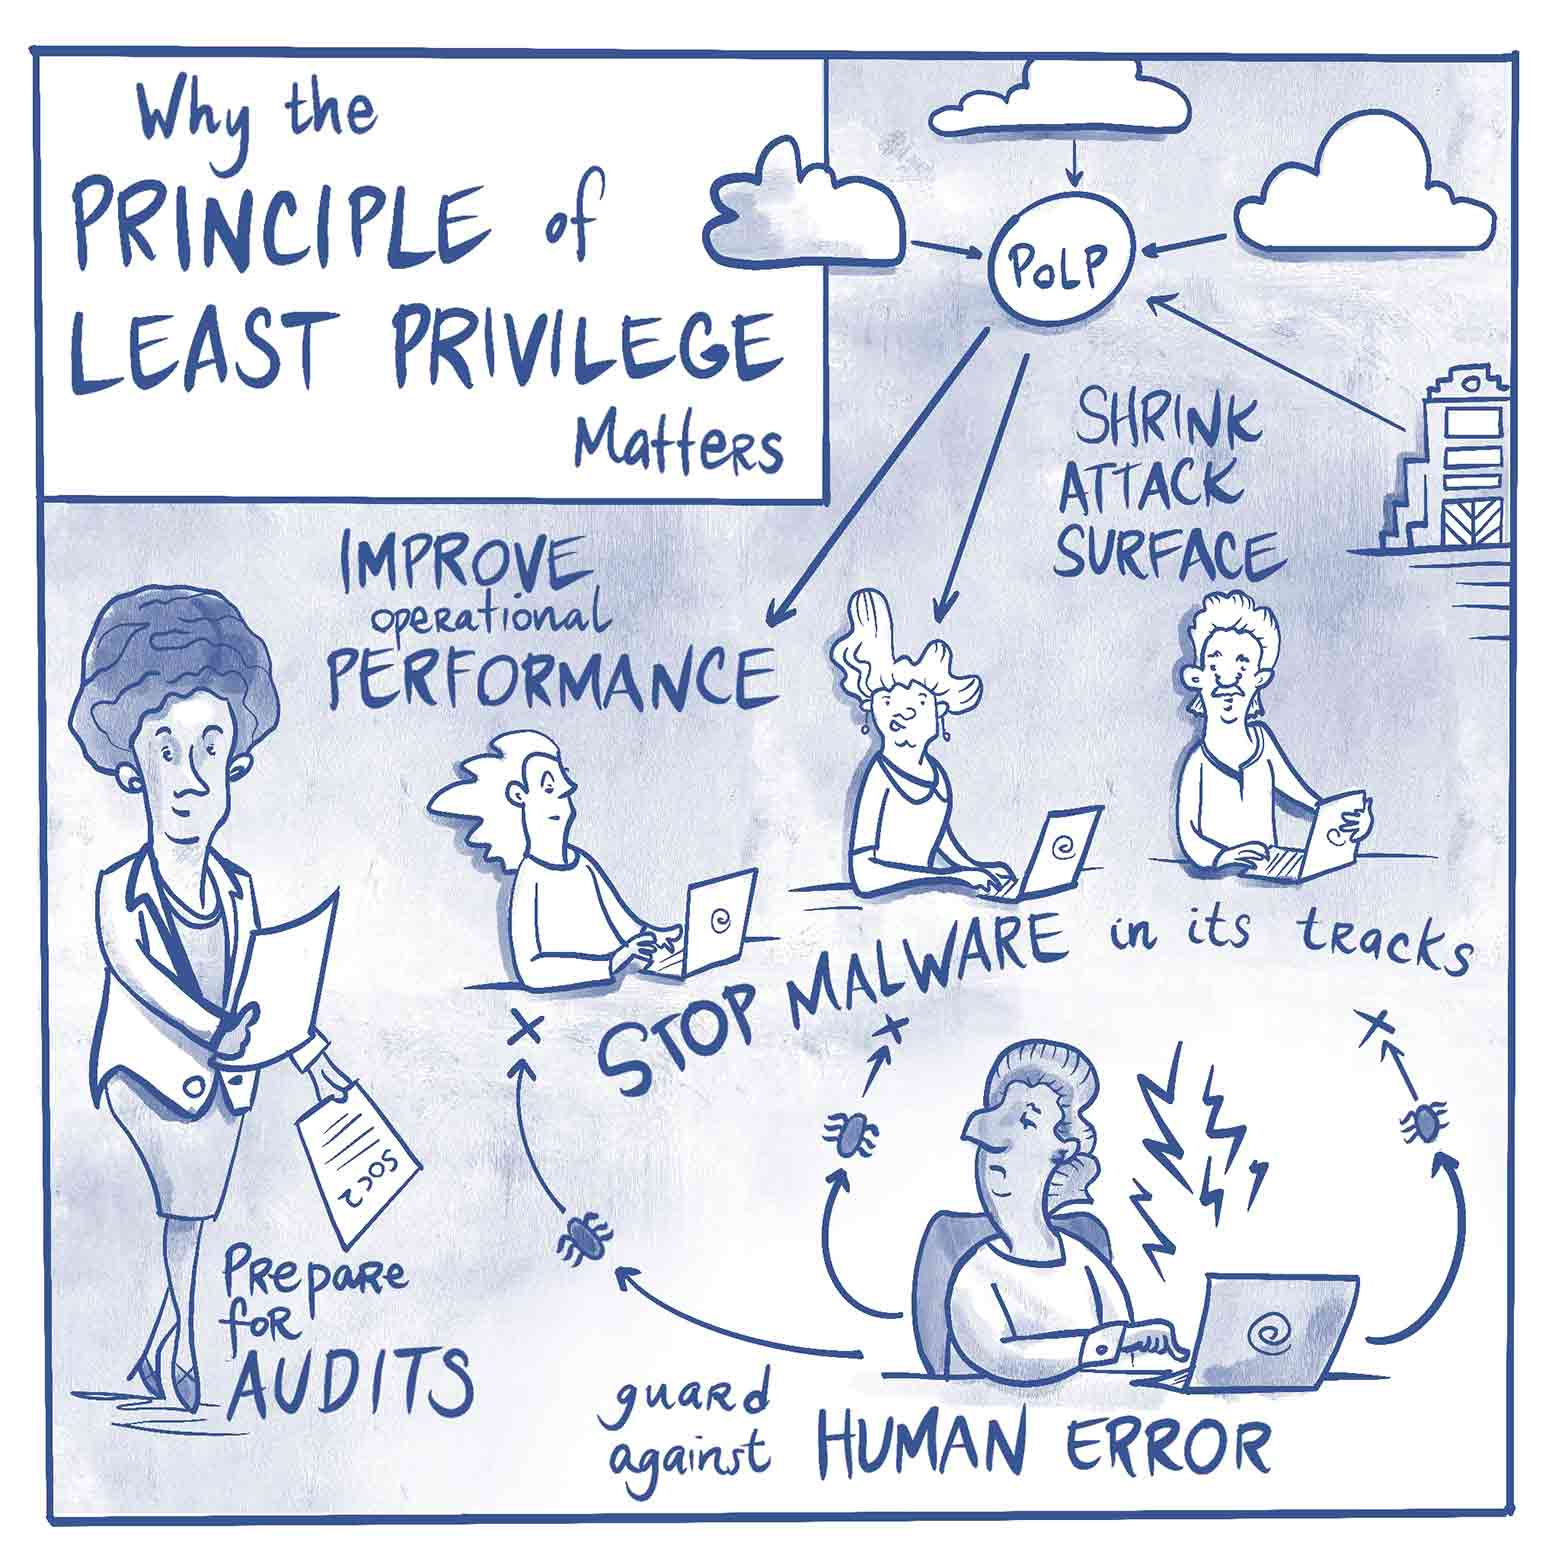 Why the Principle of Least Privilege Matters